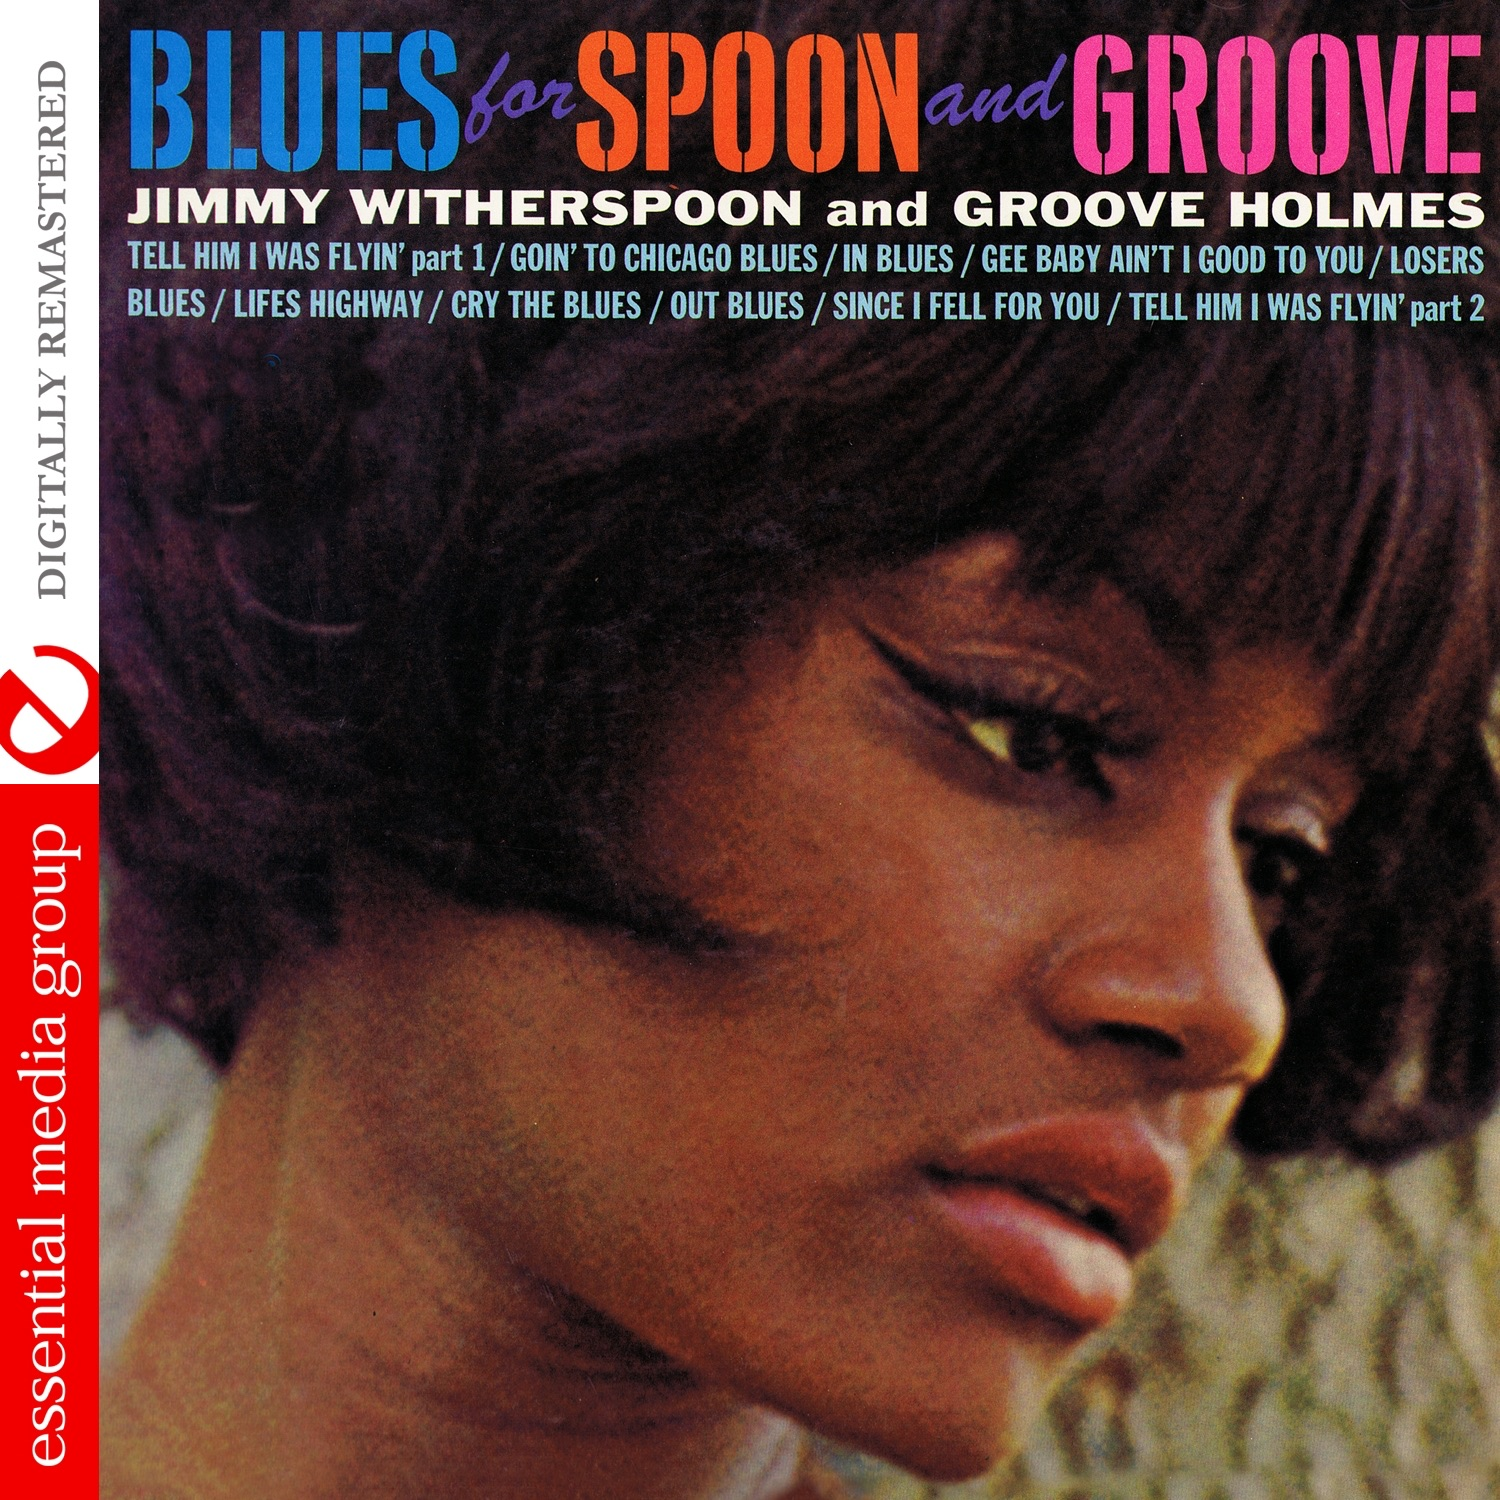 Blues for Spoon and Groove